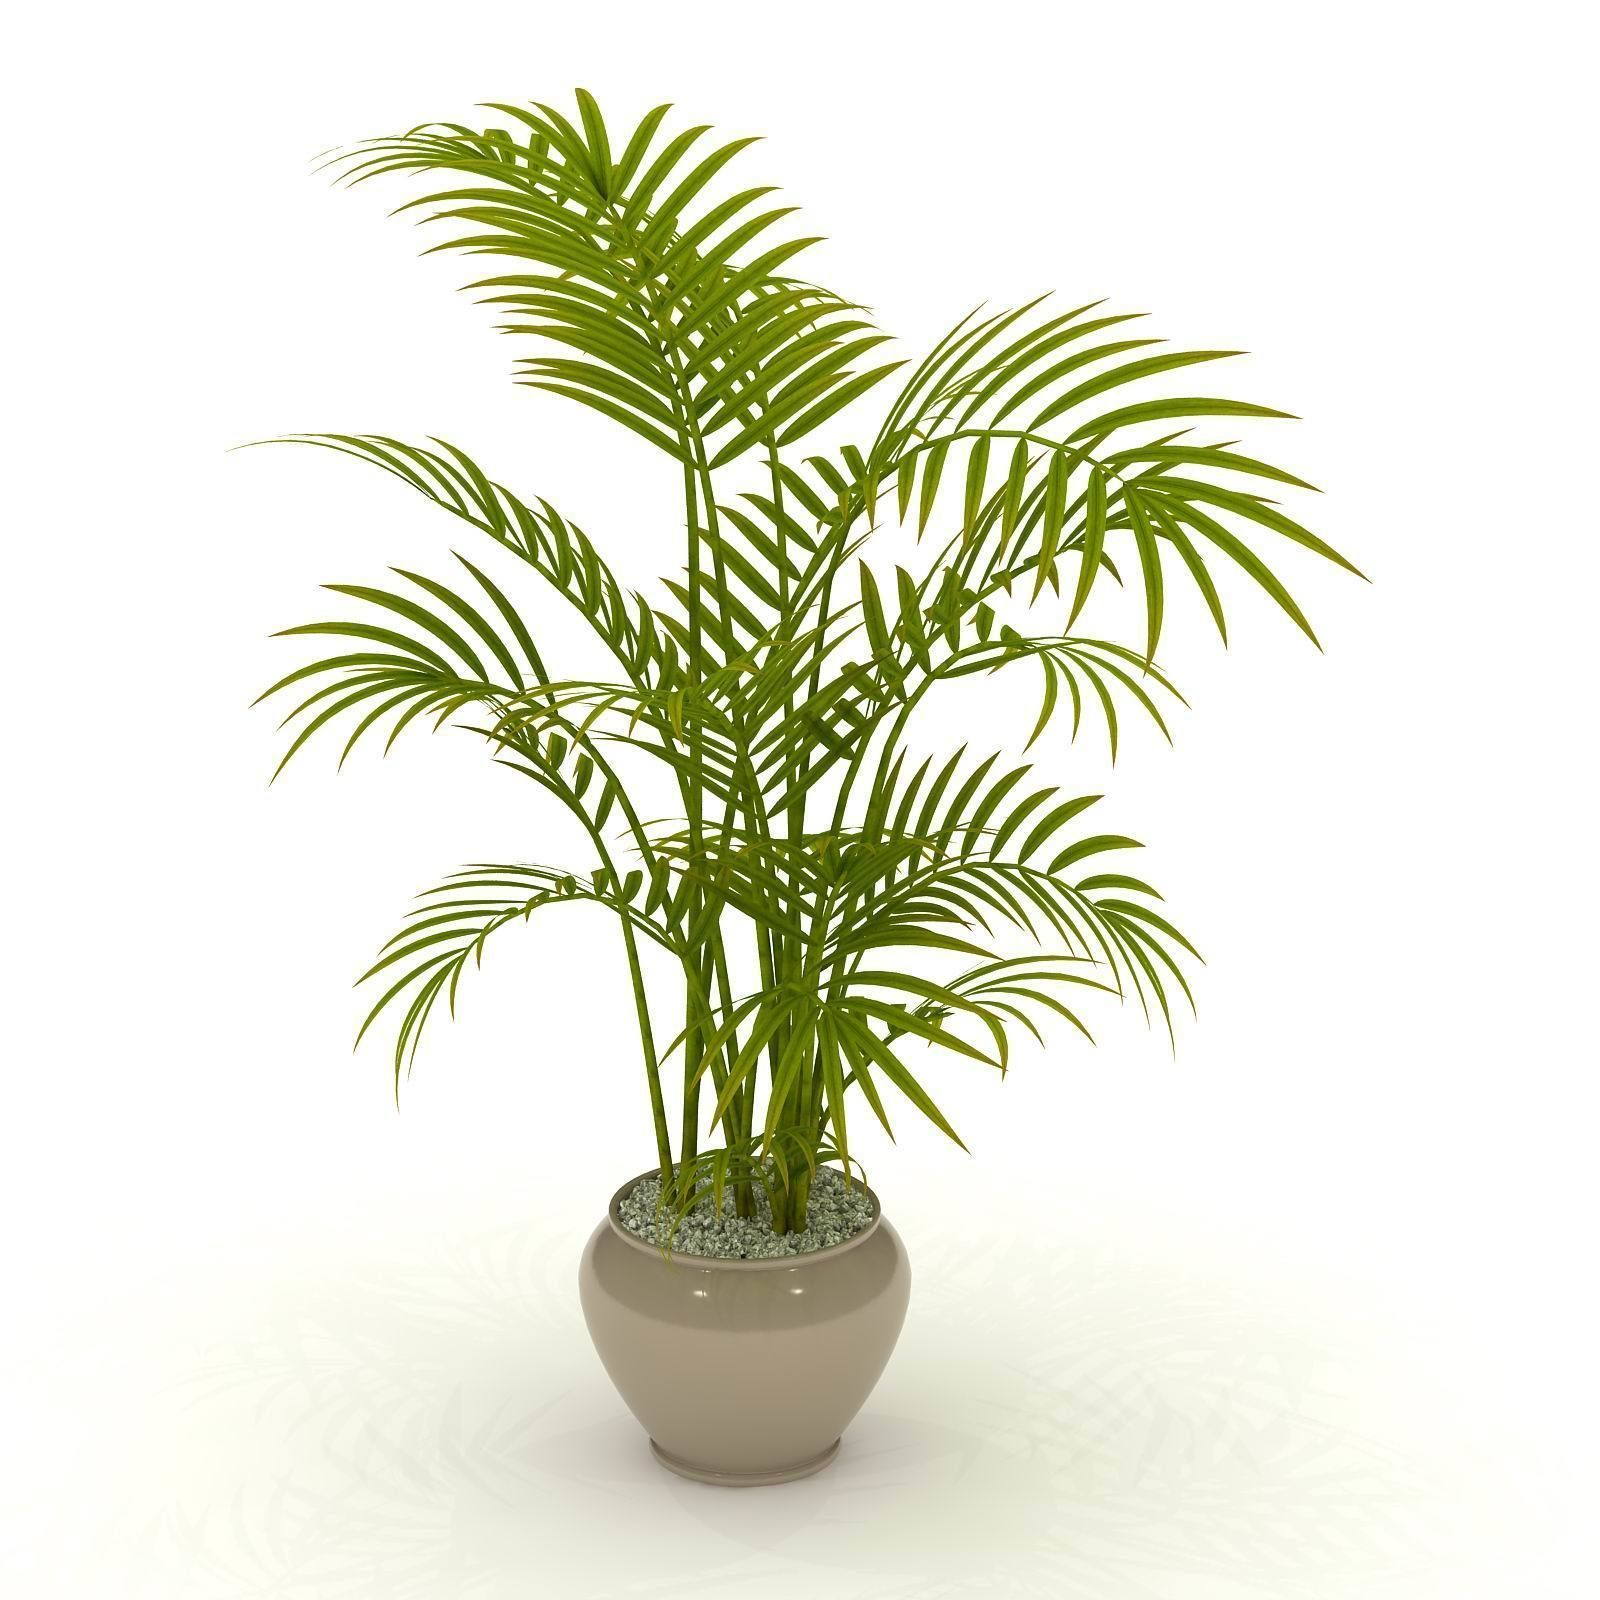 Artificial Areca Palm Tree Potted Plants Artificial Chrysalidocarpus Lutescens Bonsai Synthetic Indoor Coconut Tree Buy Artificial Chrysalidocarpus Date Palm Bonsai Best Bonsai Images 2018